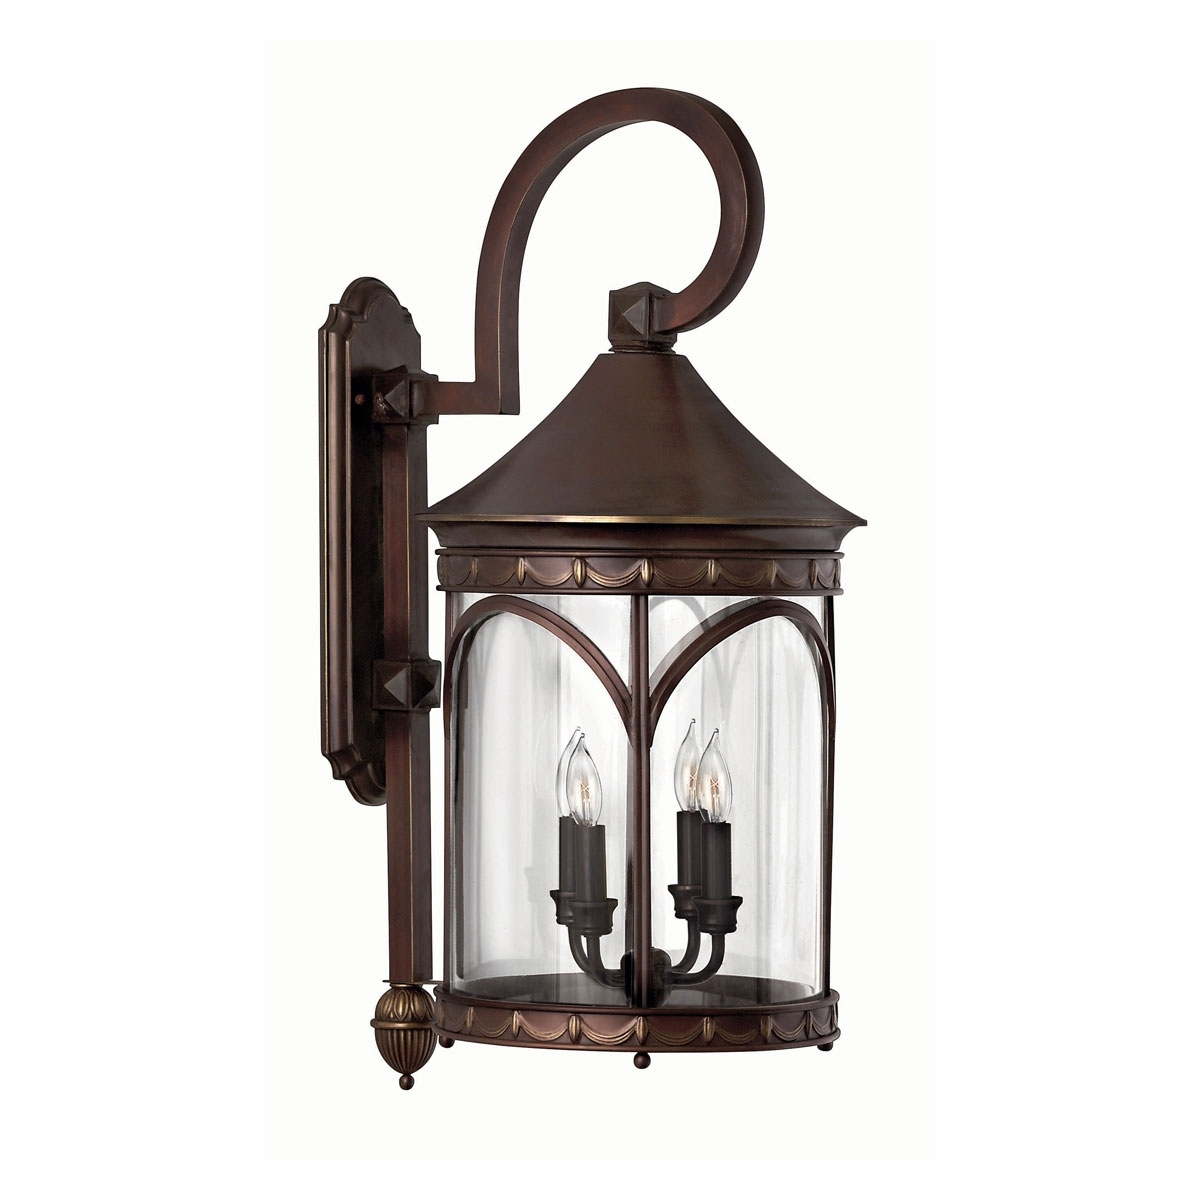 Large Wall Mount Hinkley Lighting Regarding Most Popular 2315cb – Large Wall Outdoor Light, 30 Inch, Lucerne Copper Bronze (View 13 of 20)